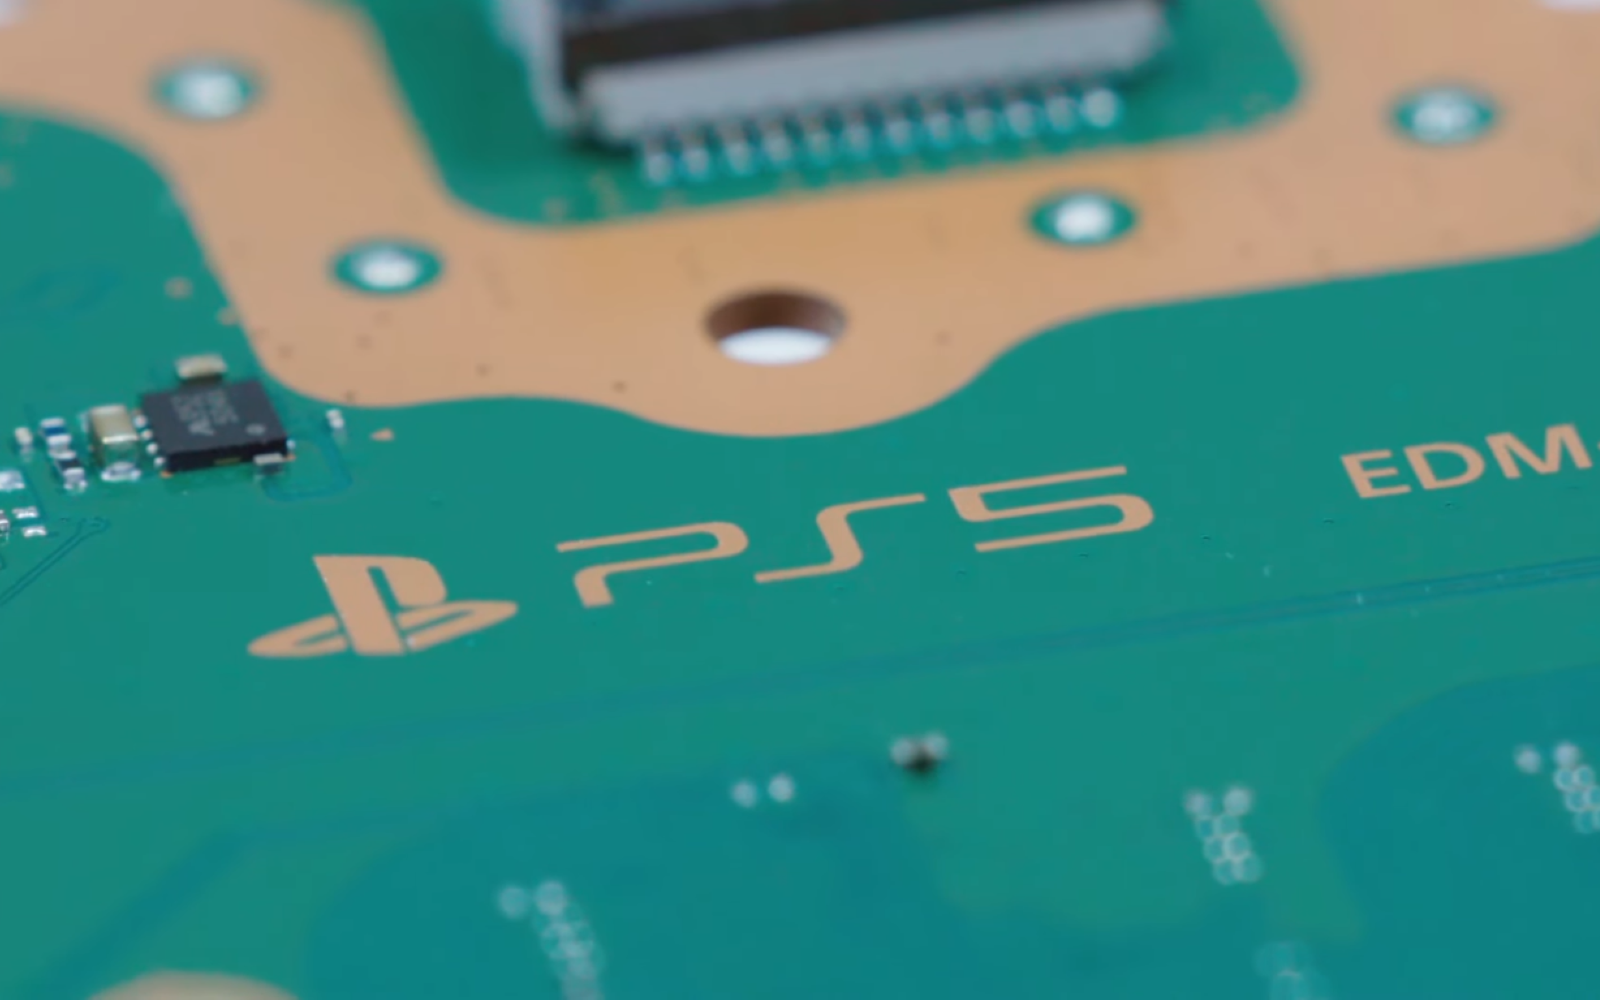 Sony Release A PS5 Teardown, Showing All The Working Innards